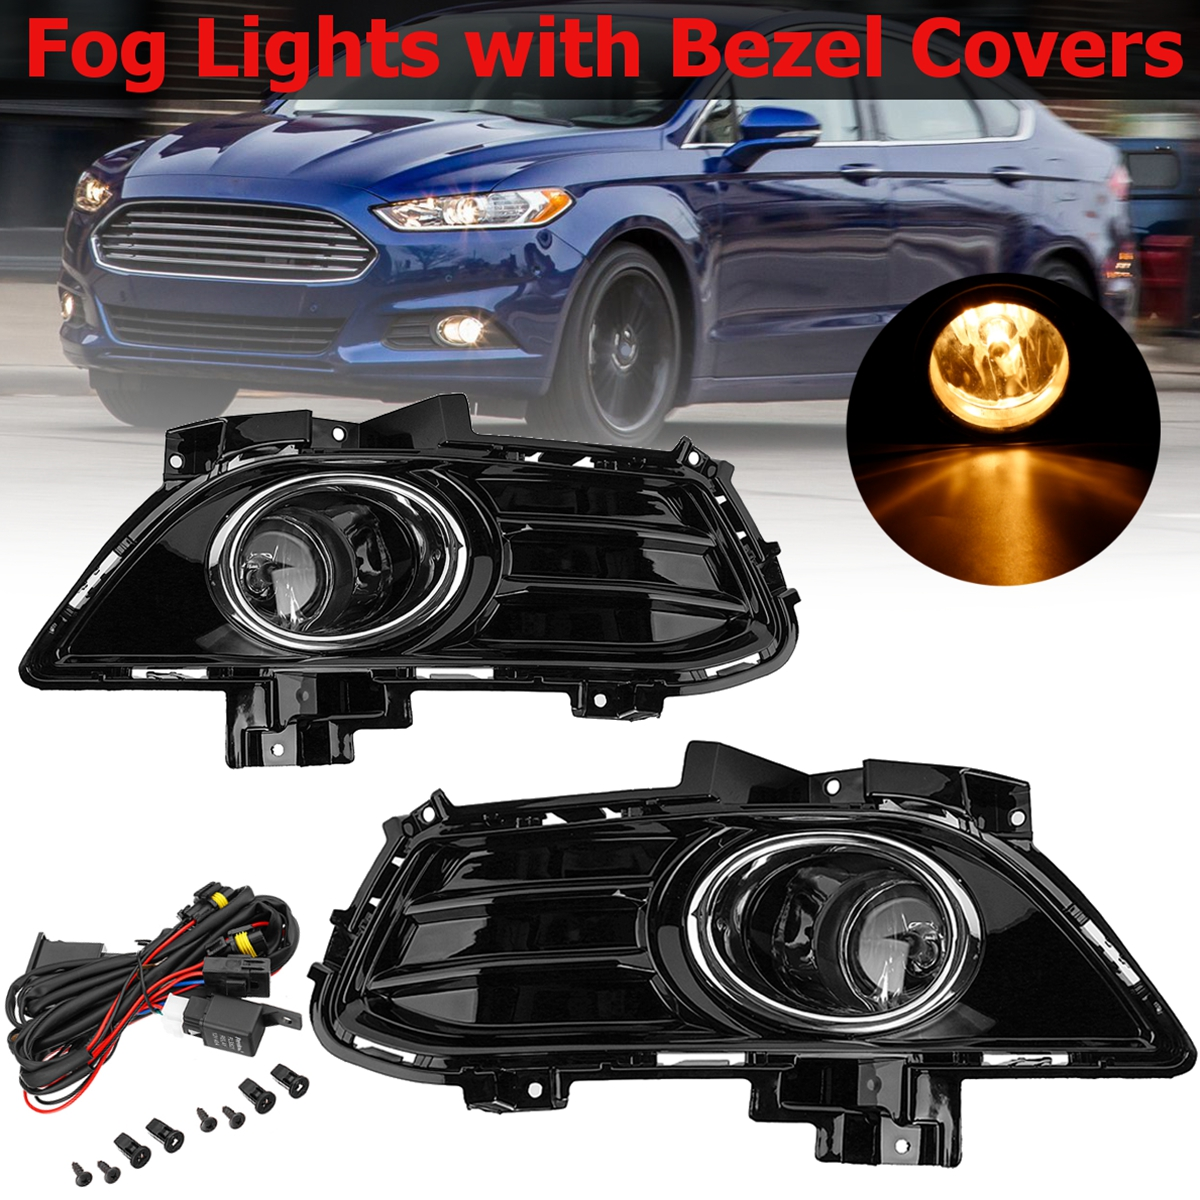 Complete Set Front Fog Lights Foglamp Kit with Bezel Covers and Wiring For Ford for Fusion for Mondeo 2013 2015 2016 free shipping fog light set fog lights lamp for toyota vios 2013 on clear lens pair set wiring kit